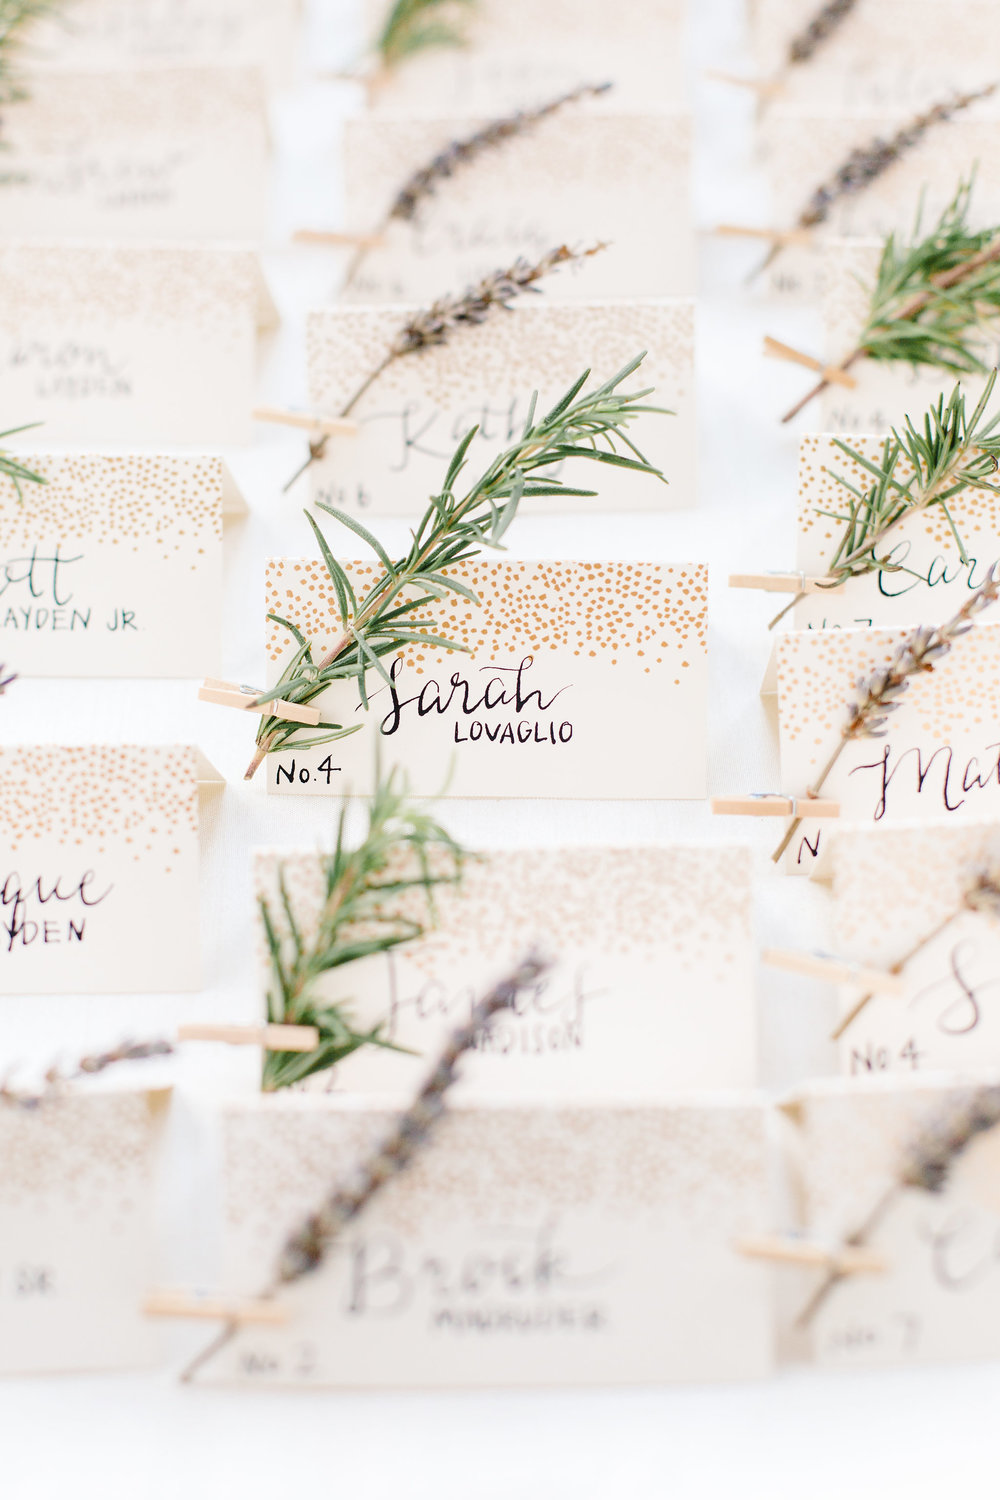 Escort cards for wedding guests